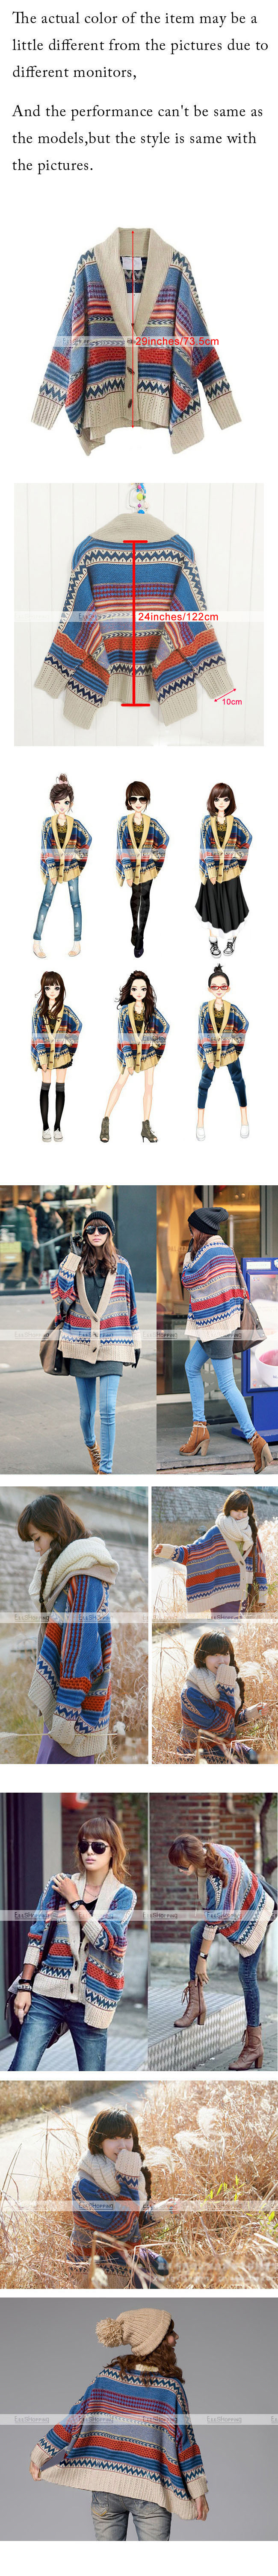 New Women Bohemian Tribal Oversized Knit Bat Sleeve Sweater Knitwear Cardigan #Y | eBay